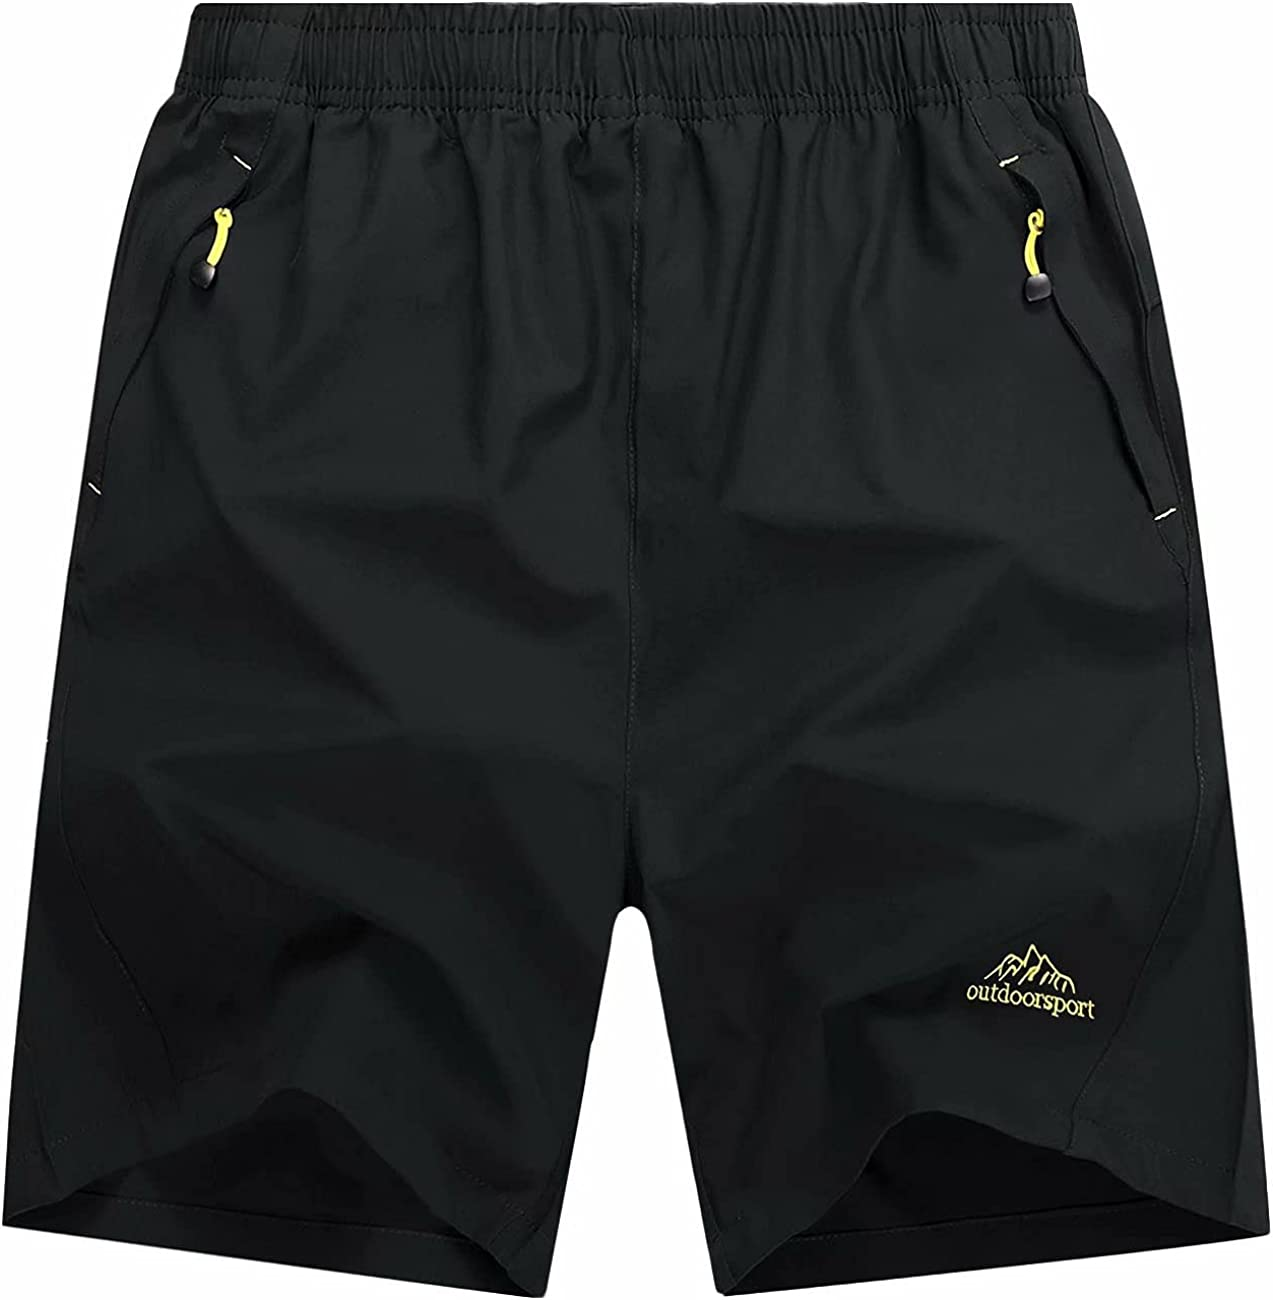 Colorado Springs Mall MAGCOMSEN Men's Shorts Quick Dry Athletic with Zi Cheap SALE Start Running